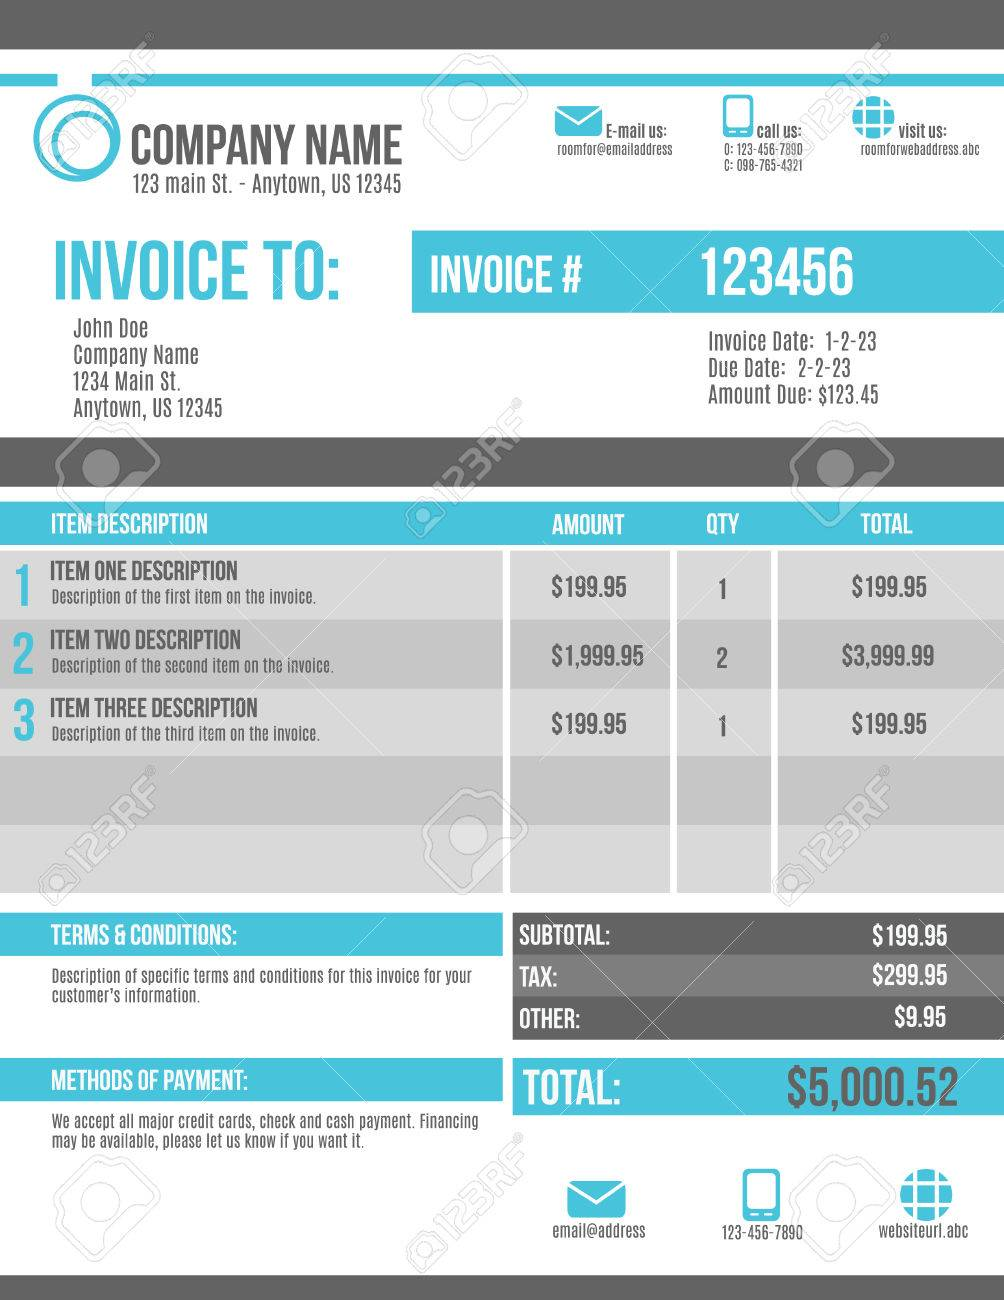 Customizable Invoice Template Design Royalty Free Cliparts, Vectors ...